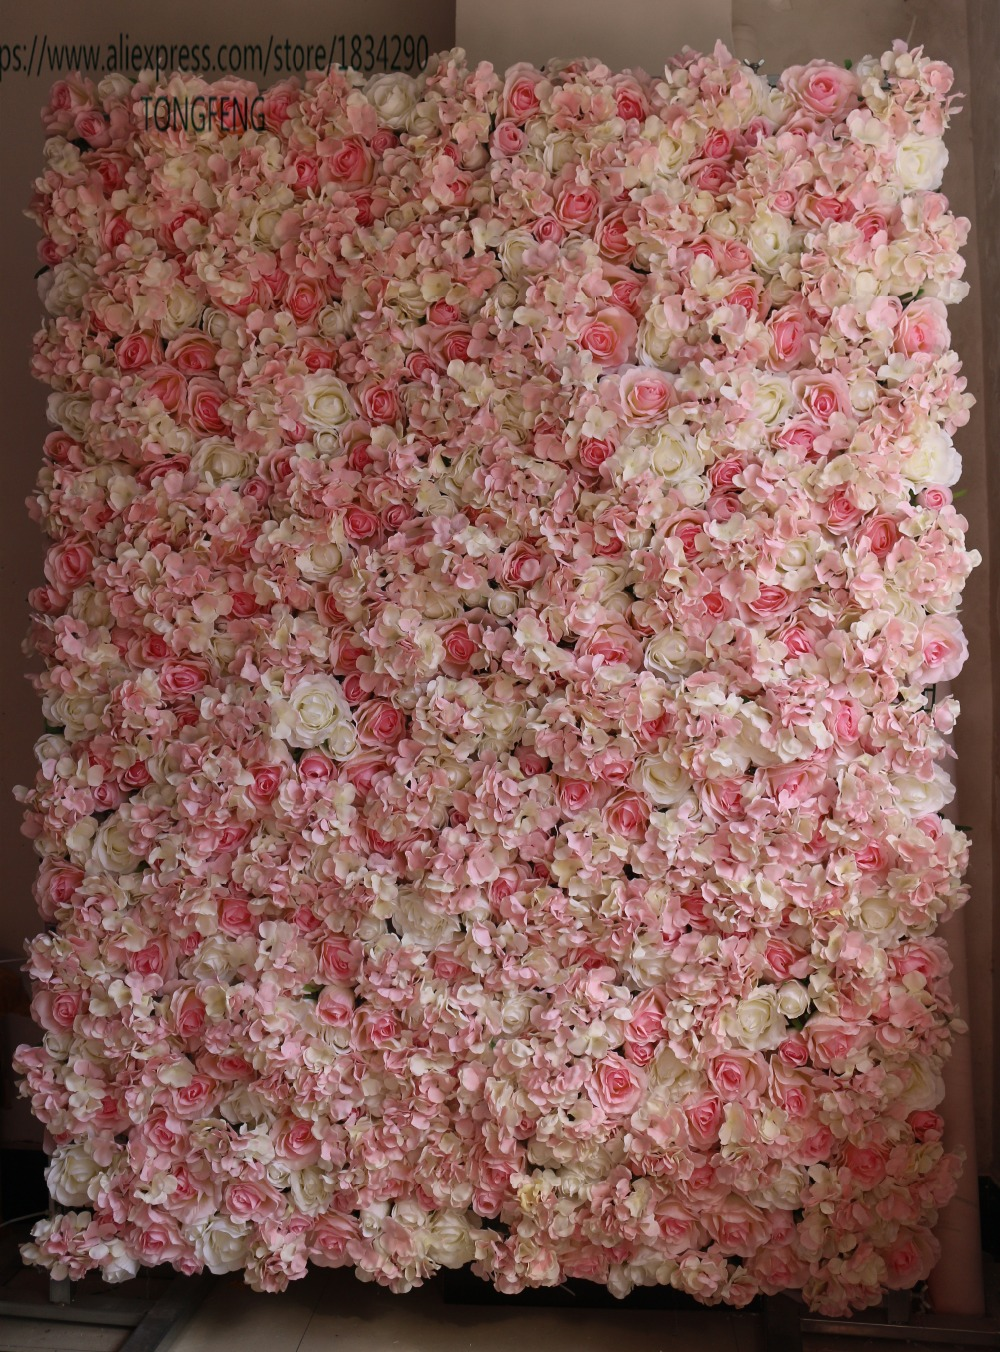 TONGFENG Artificial flower wall silk rose and hydrangea wedding background decoration Table centerpiece flower 10pcs lot